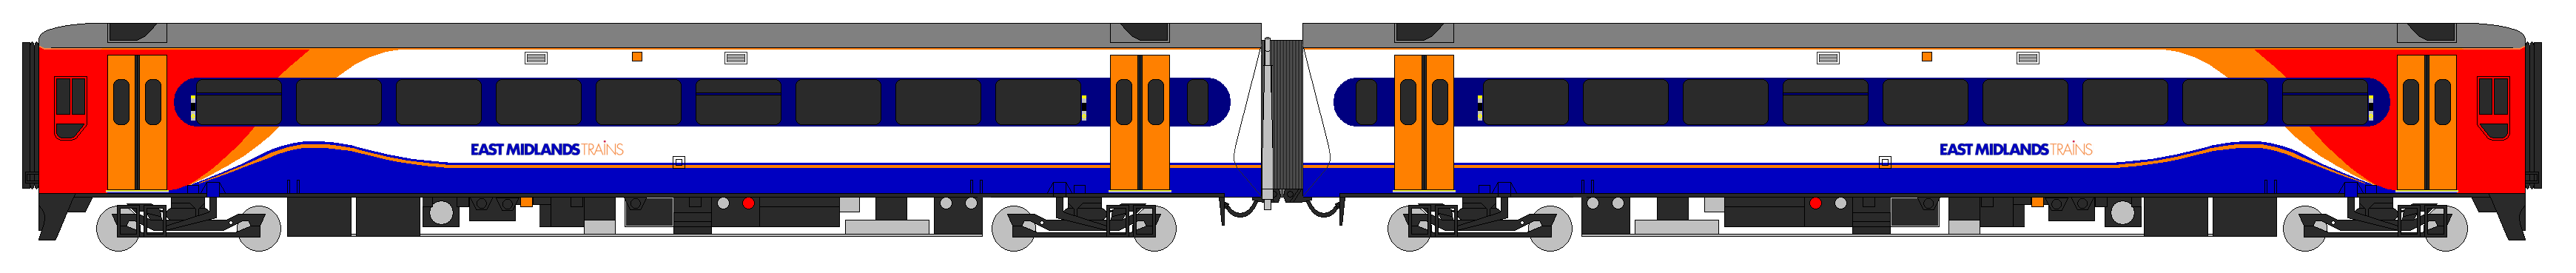 Class_158_East_Midlands_Trains_Diagram file class 158 east midlands trains diagram png wikimedia commons train diagrams at edmiracle.co